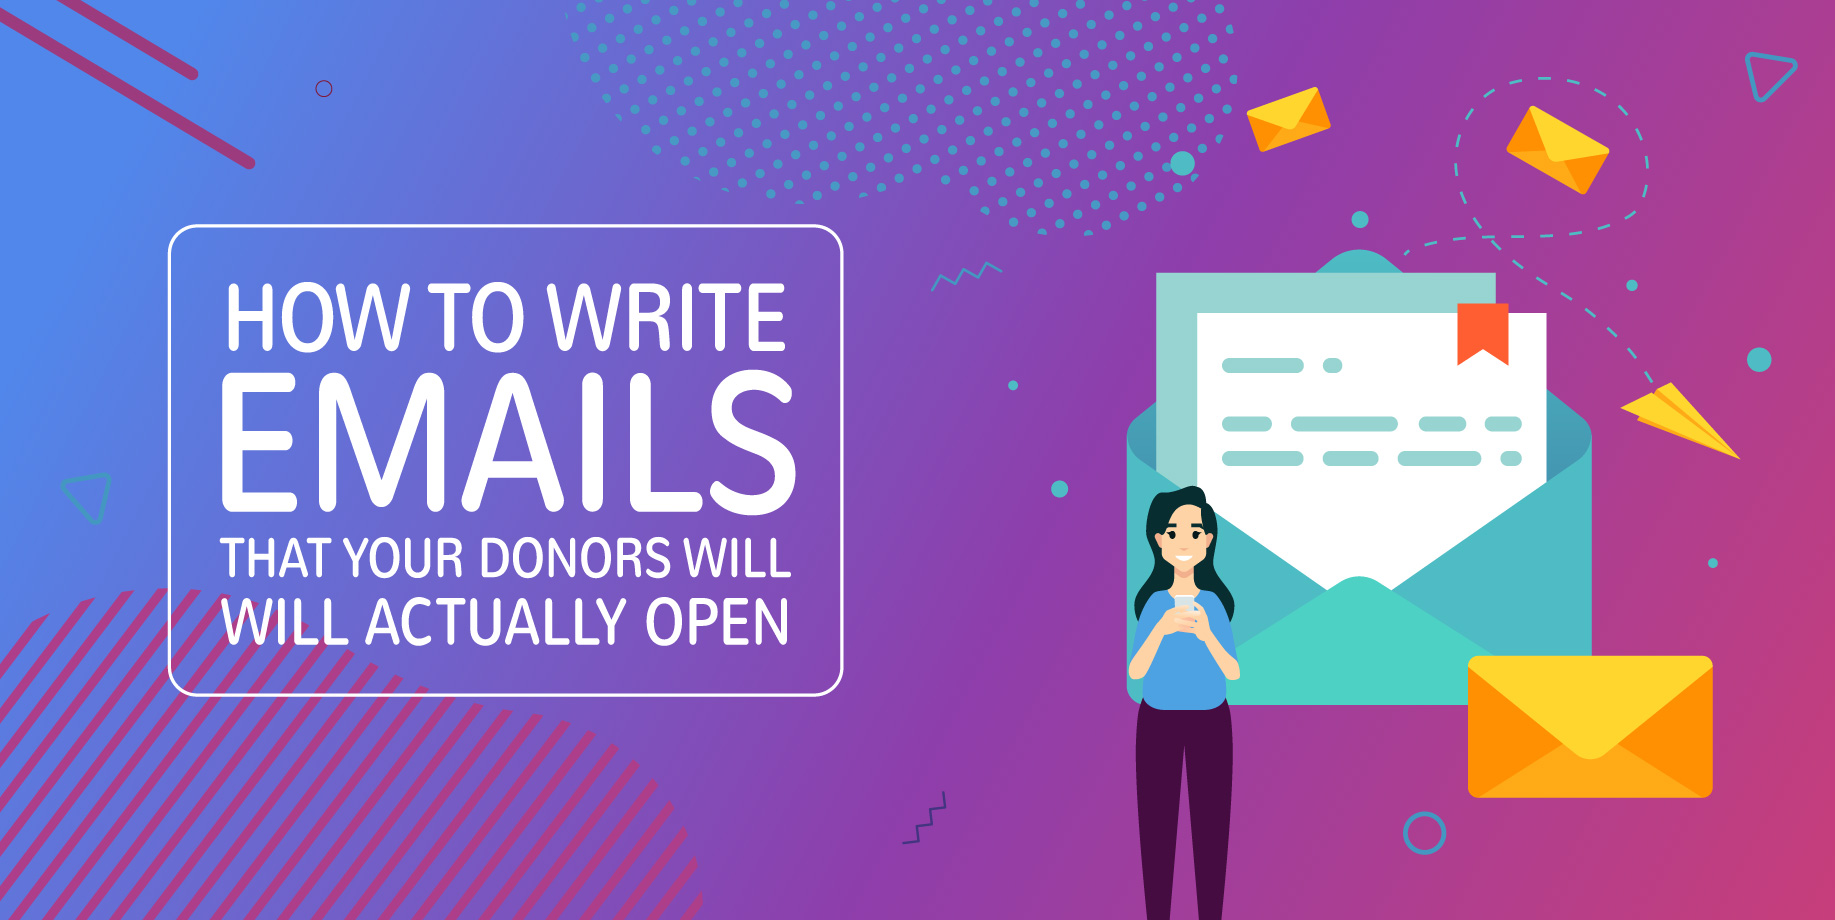 How to Write Emails That Your Donors Will Actually Open